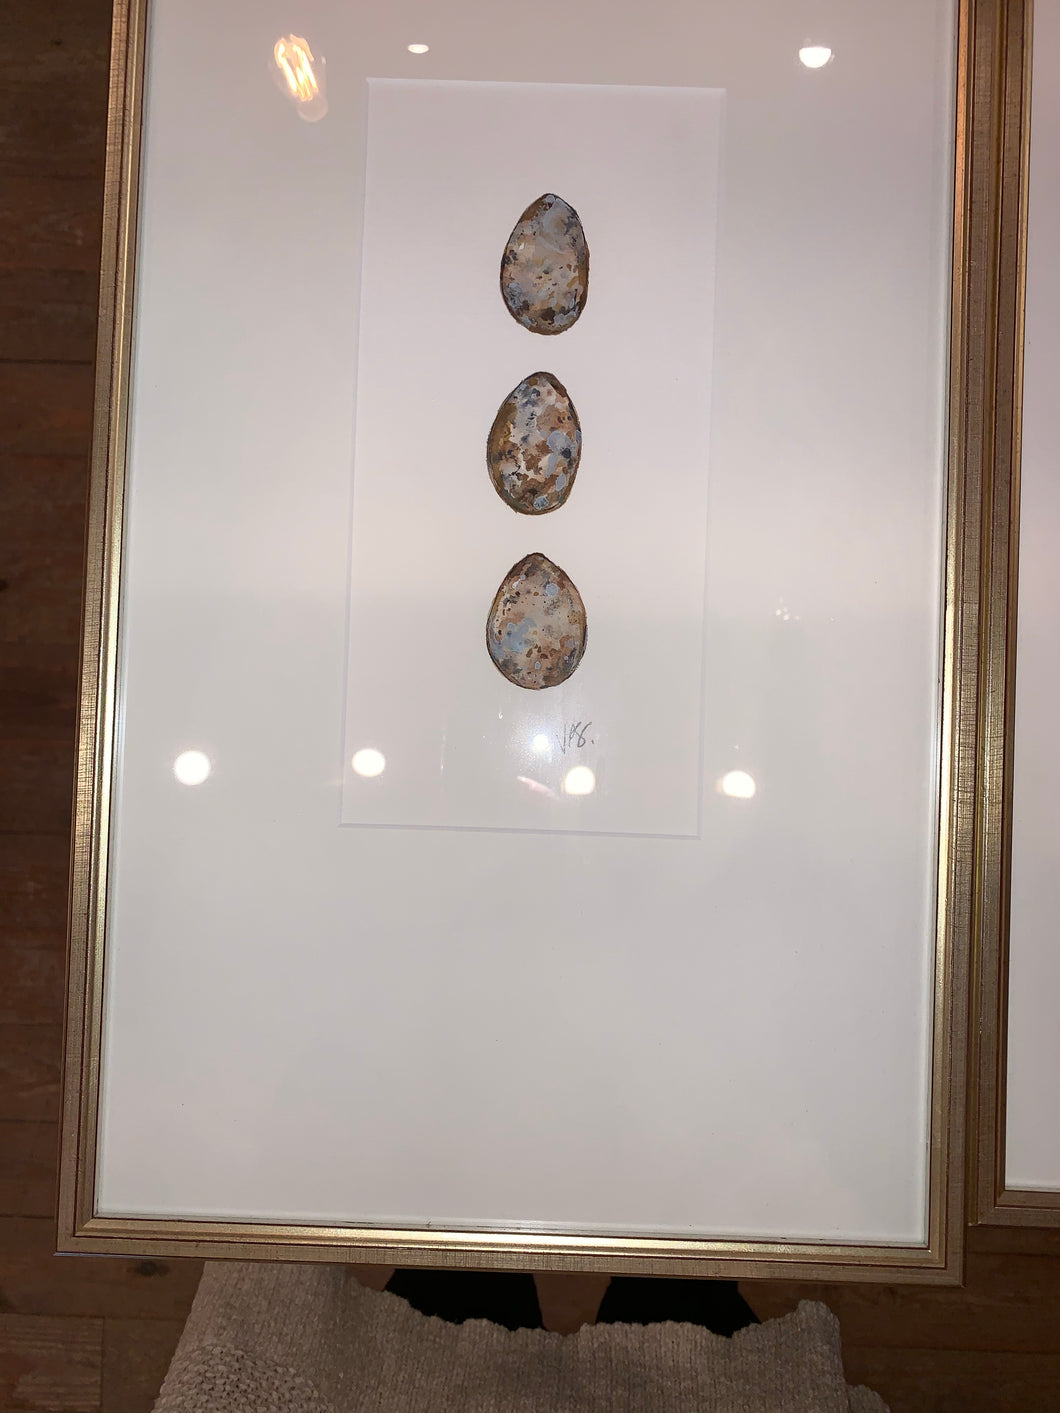 Triple Egg Framed Original by Vaughn Spanier